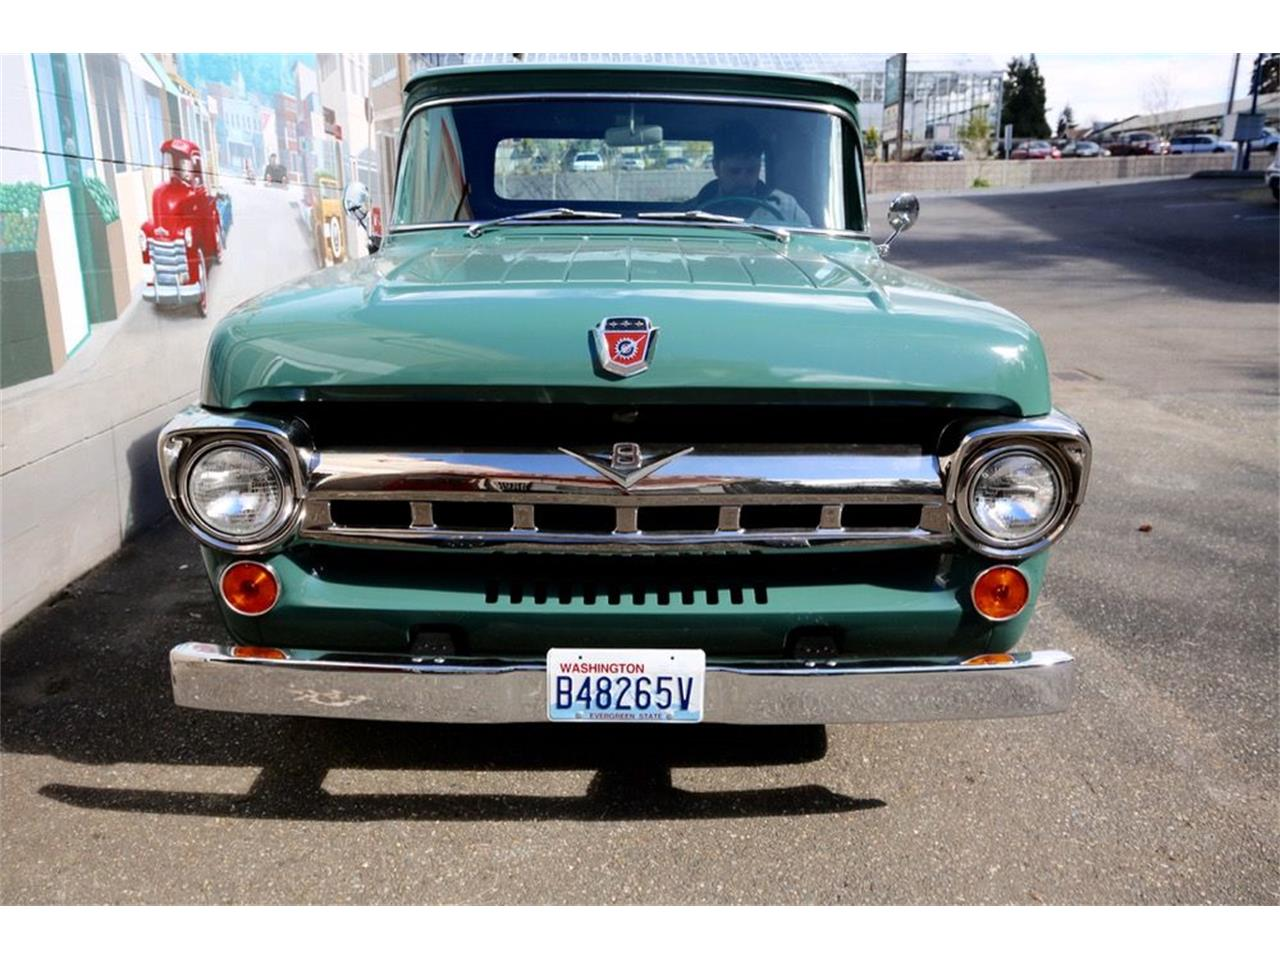 For Sale: 1957 Ford F100 in Seattle, Washington